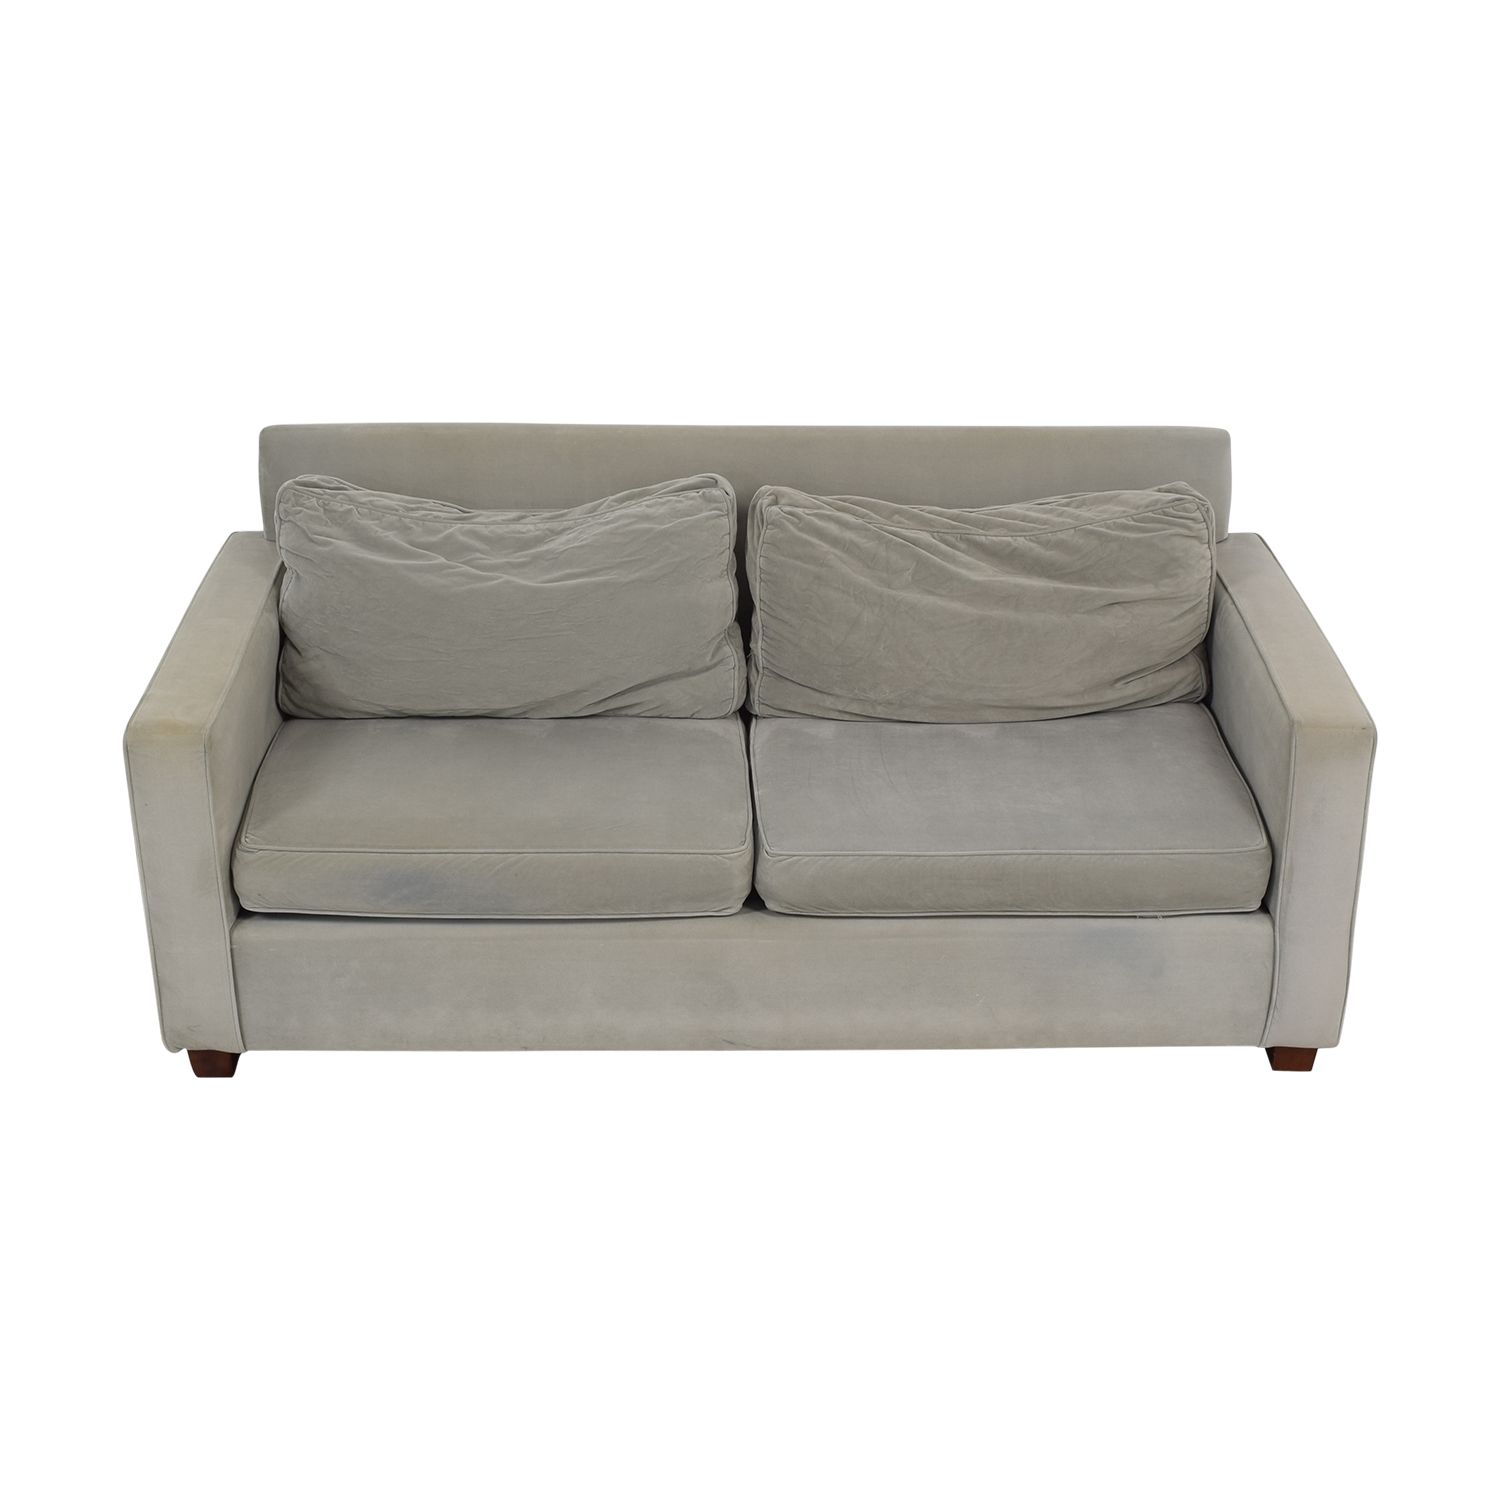 buy West Elm West Elm Henry Sofa online